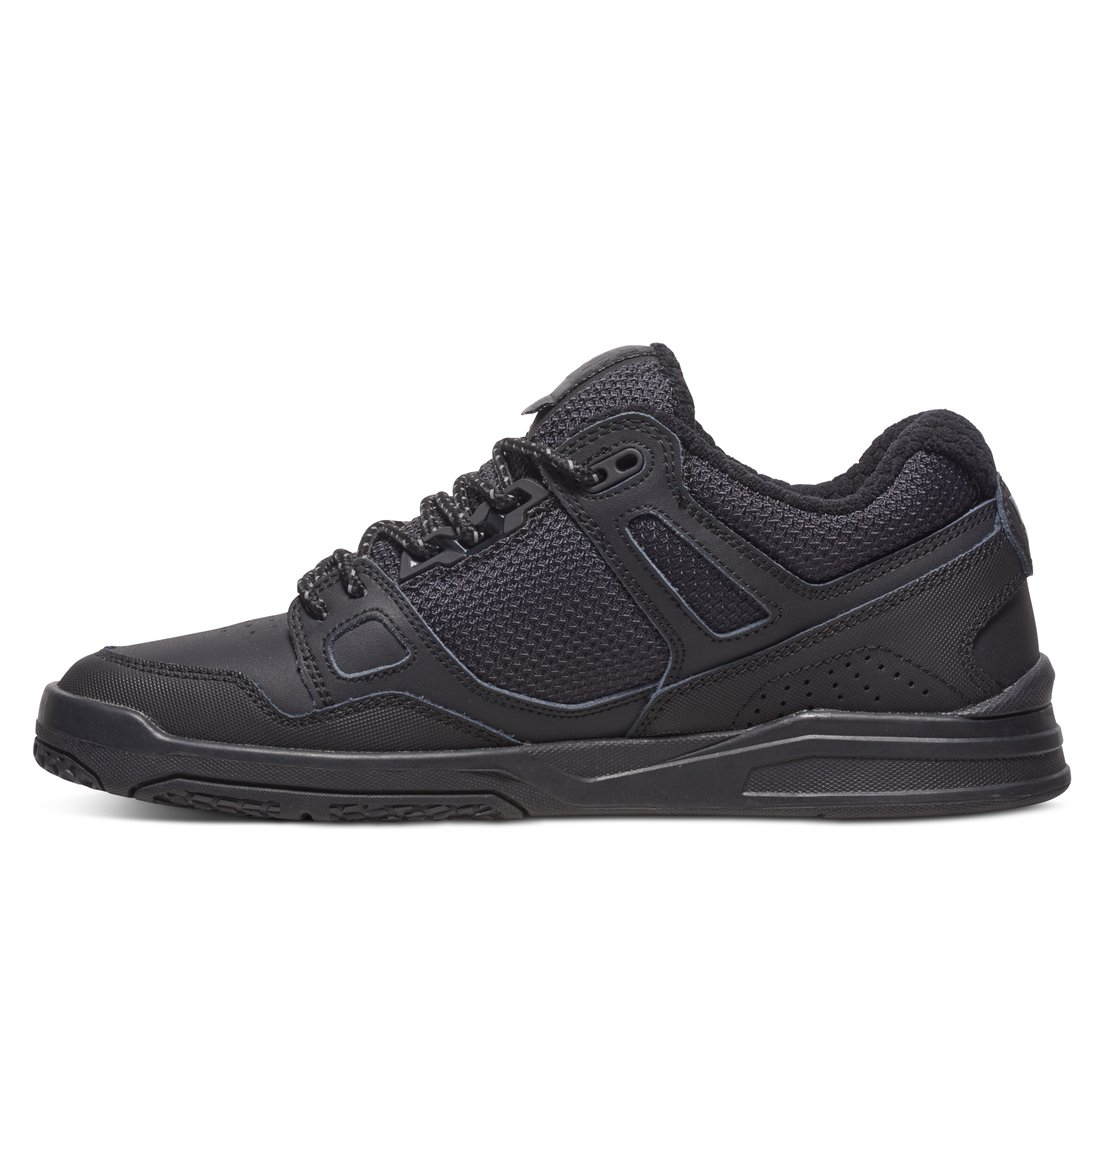 Mens DC Men's Stag 2 Skate Shoe Cheap Sale Size 47